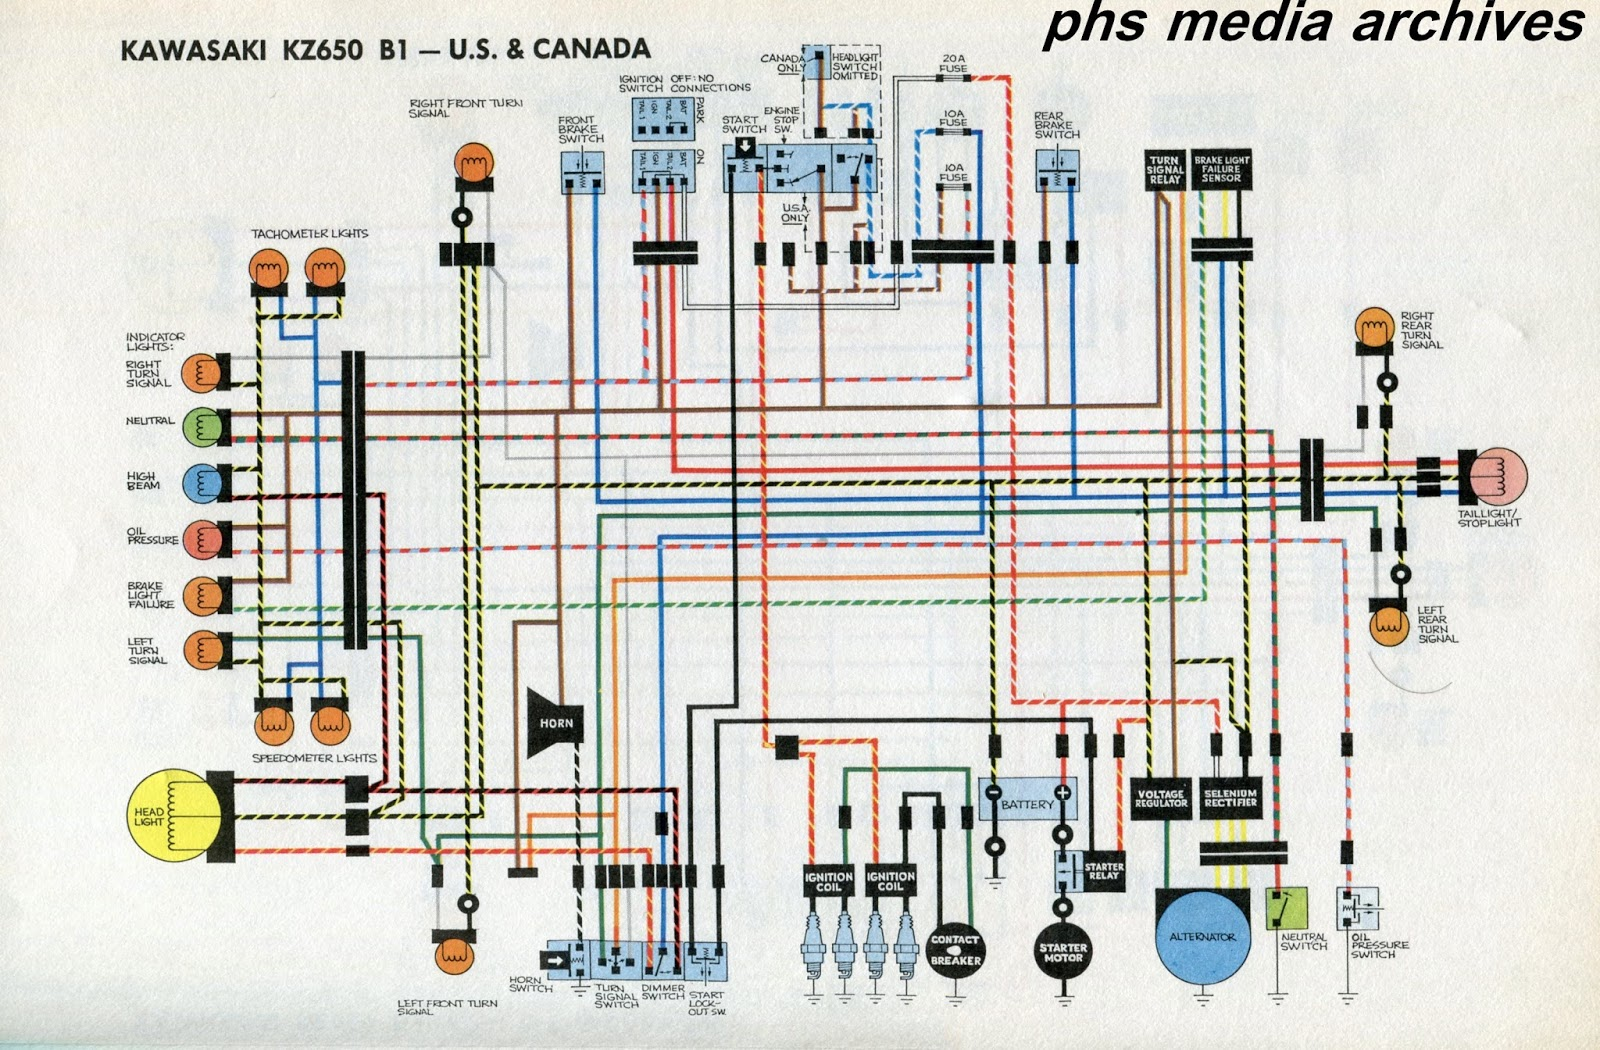 em9_867] 1978 kawasaki wiring diagrams | structure-regard wiring diagram  value | structure-regard.iluoghicomunisullacultura.it  structure-regard.iluoghicomunisullacultura.it